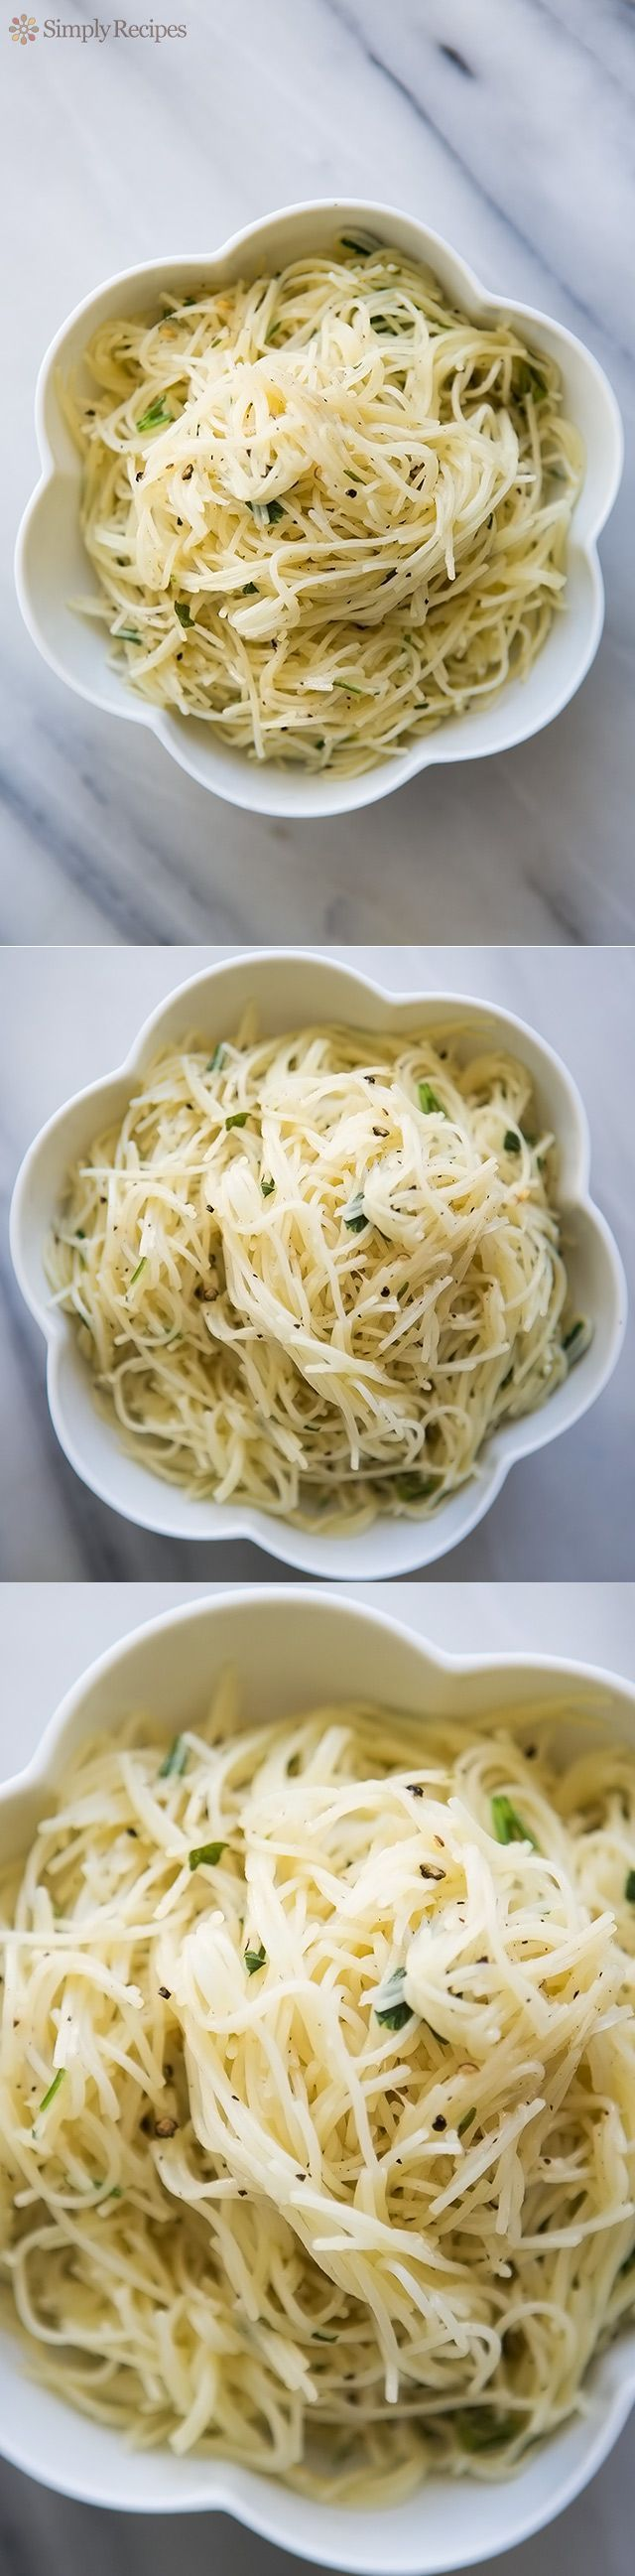 Angel Hair Pasta with Garlic, Herbs, and Parmesan ~ Simple angel hair pasta side, with an olive oil, garlic, herb sauce. ~ SimplyRecipes.com